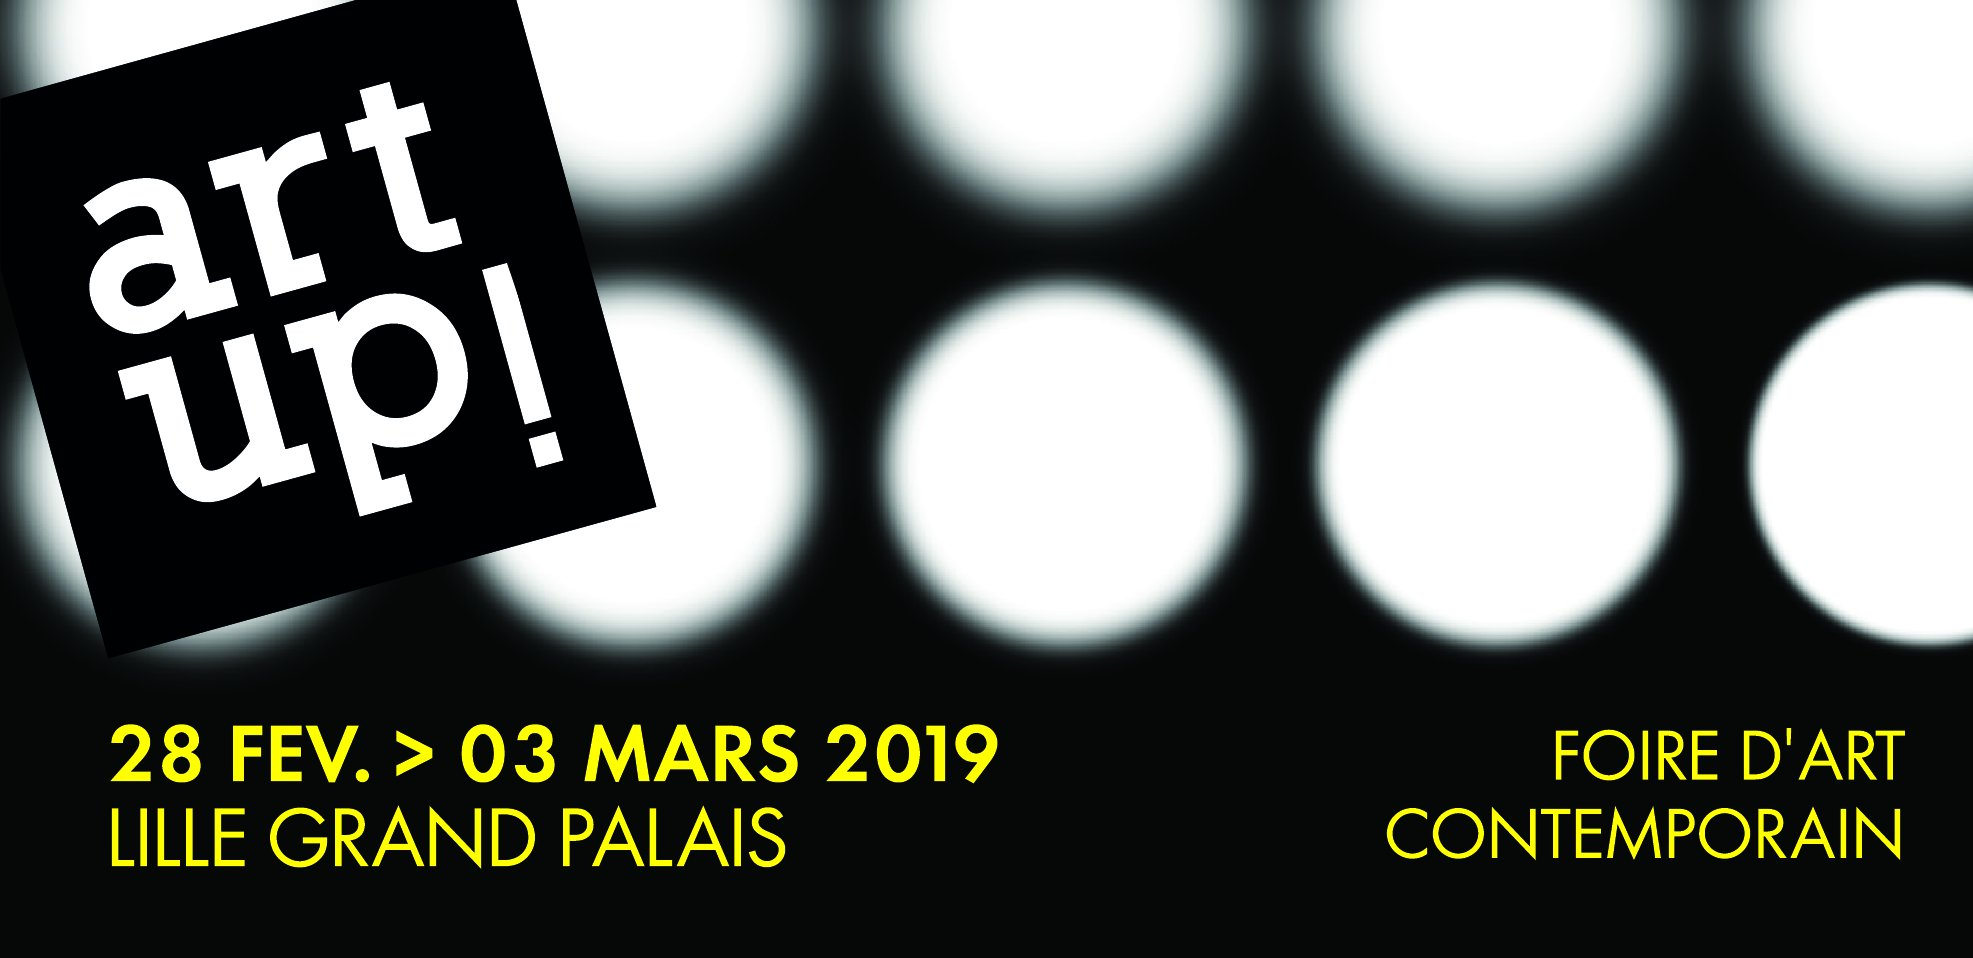 Art Up ! Lille 2019 - 28 février au 3 mars 2019